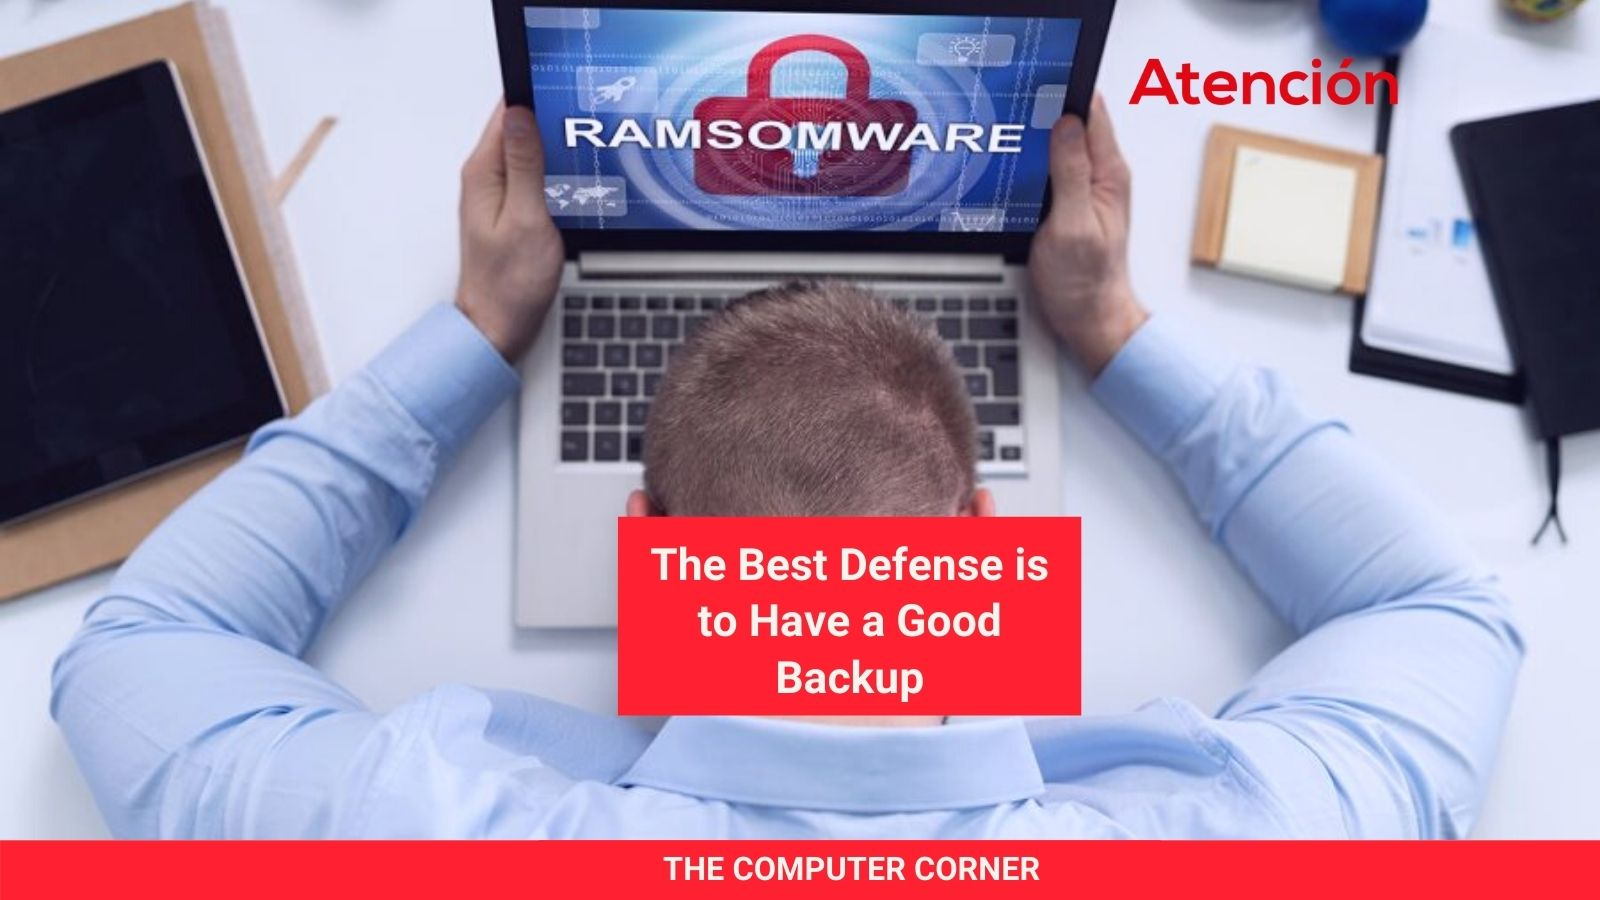 The-Best-Defense-is-to-Have-a-Good-Backup.jpg